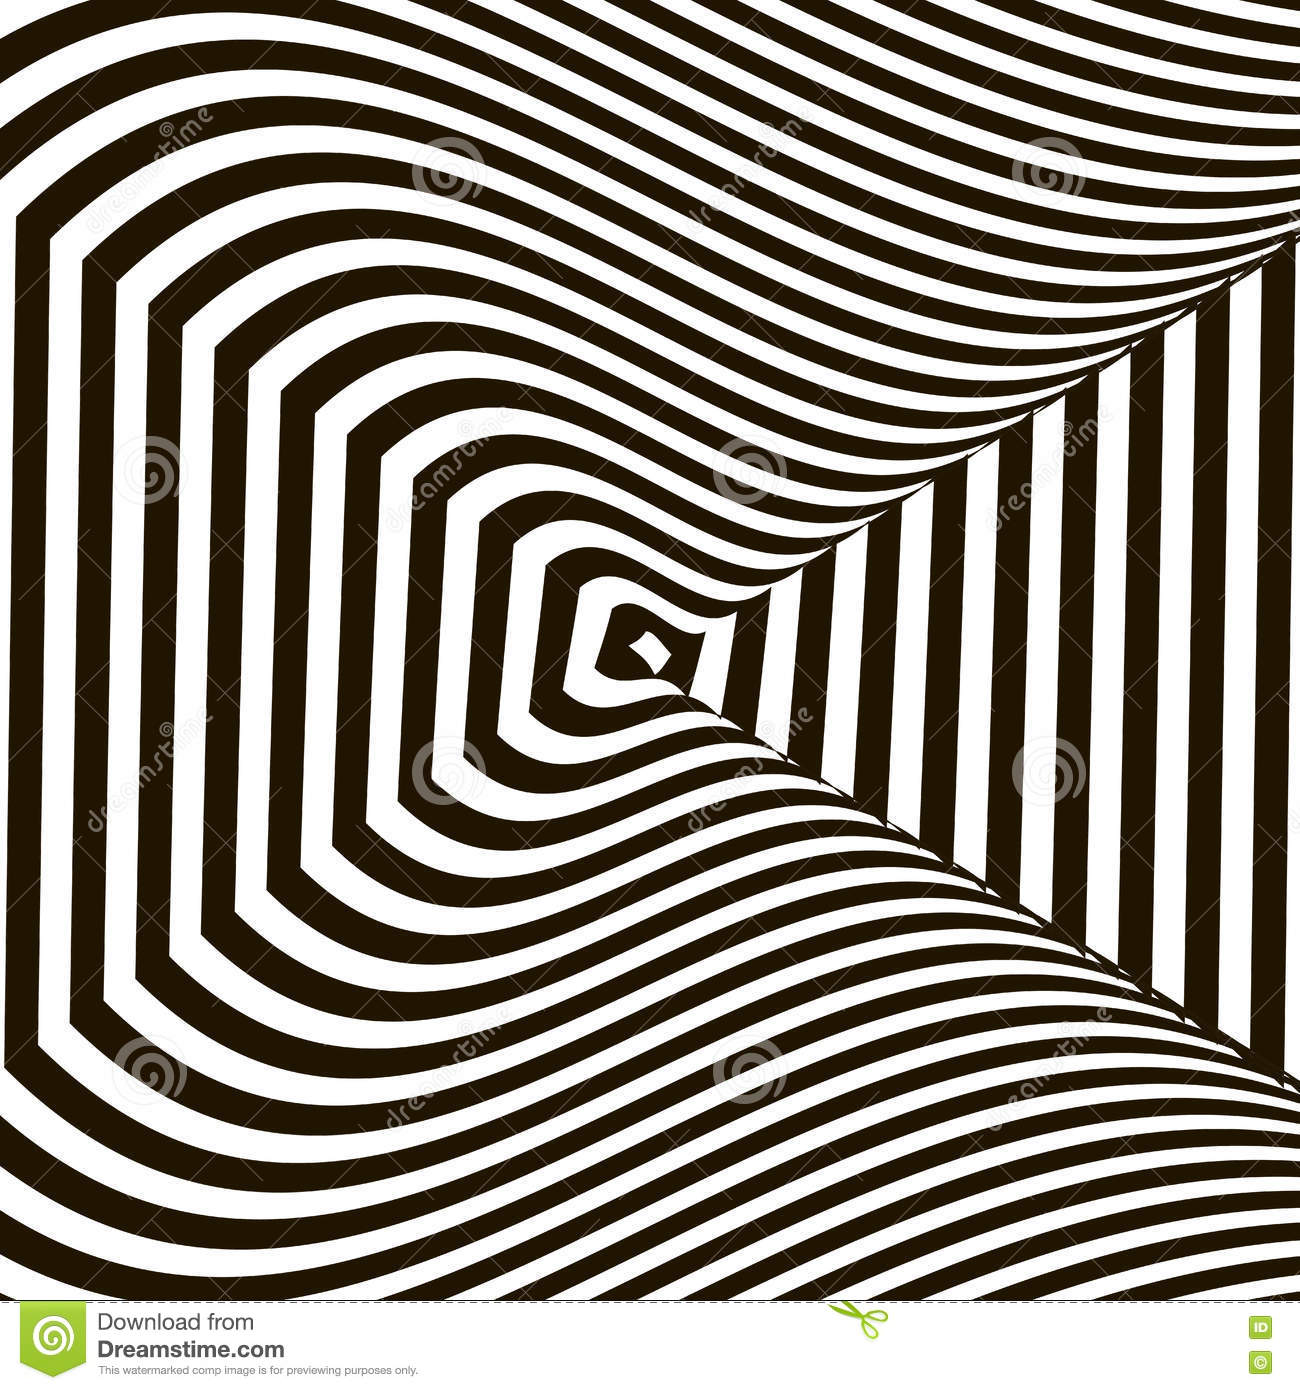 Wavy crossed stripes optical illusion black and white for Animated optical illusions template